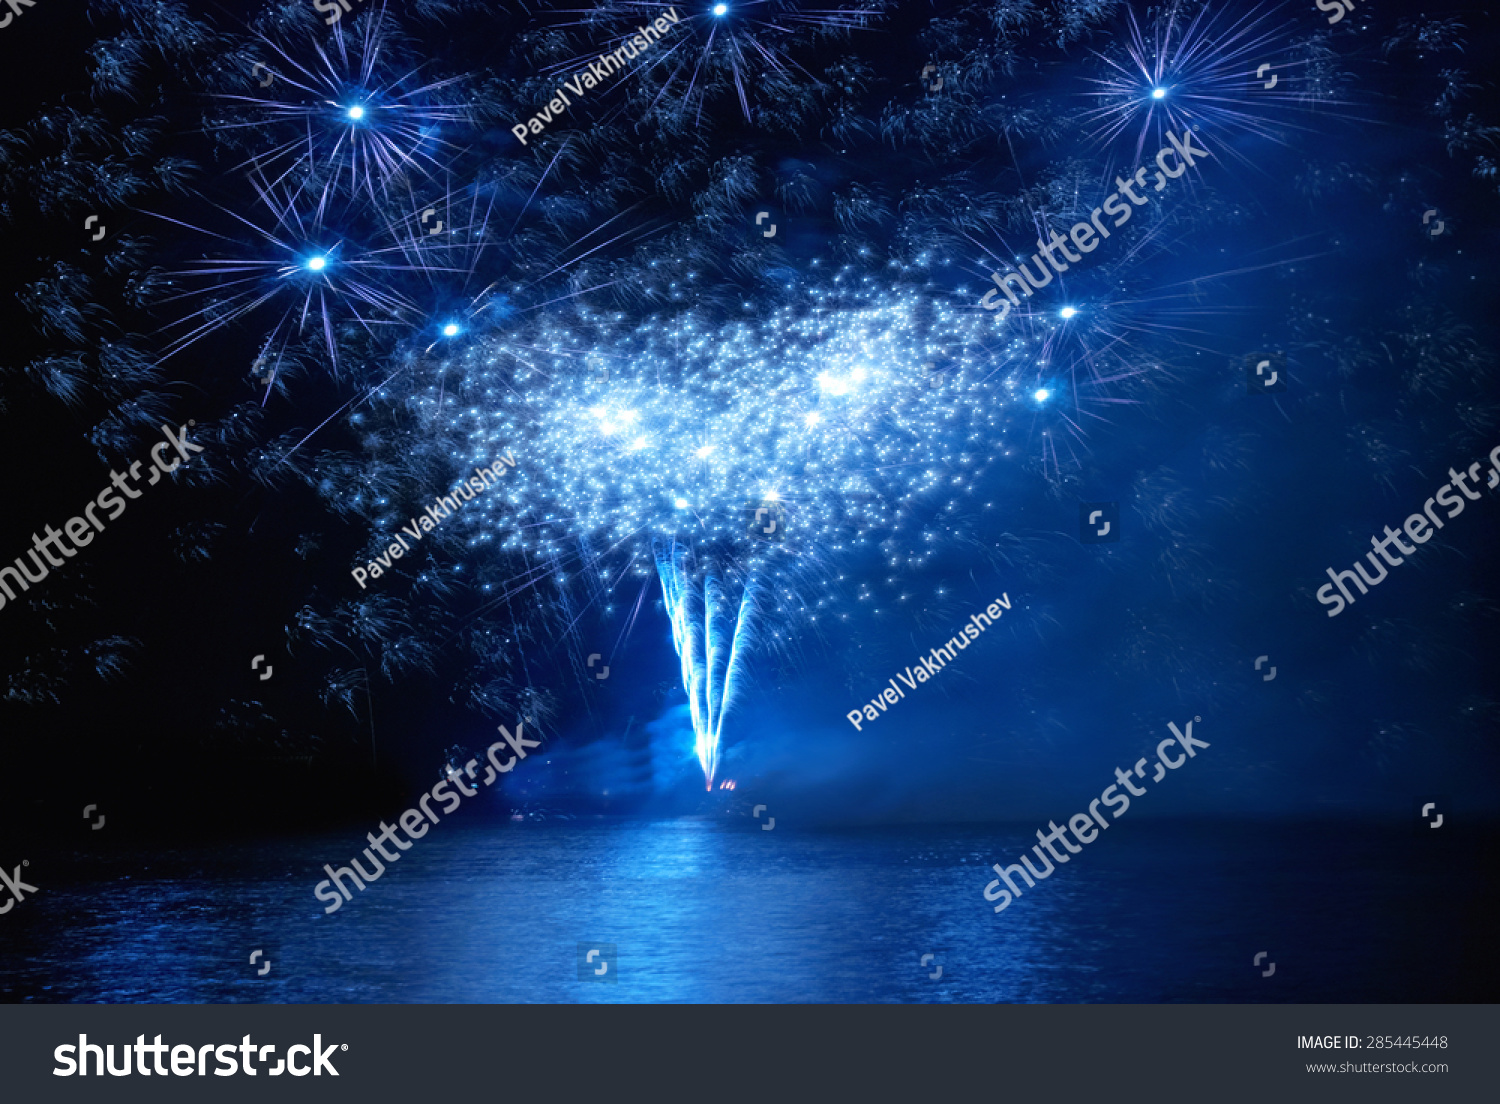 Wallpaper Salute Sky Holiday Colorful 3376x4220: Blue Holiday Fireworks On Black Sky Stock Photo 285445448